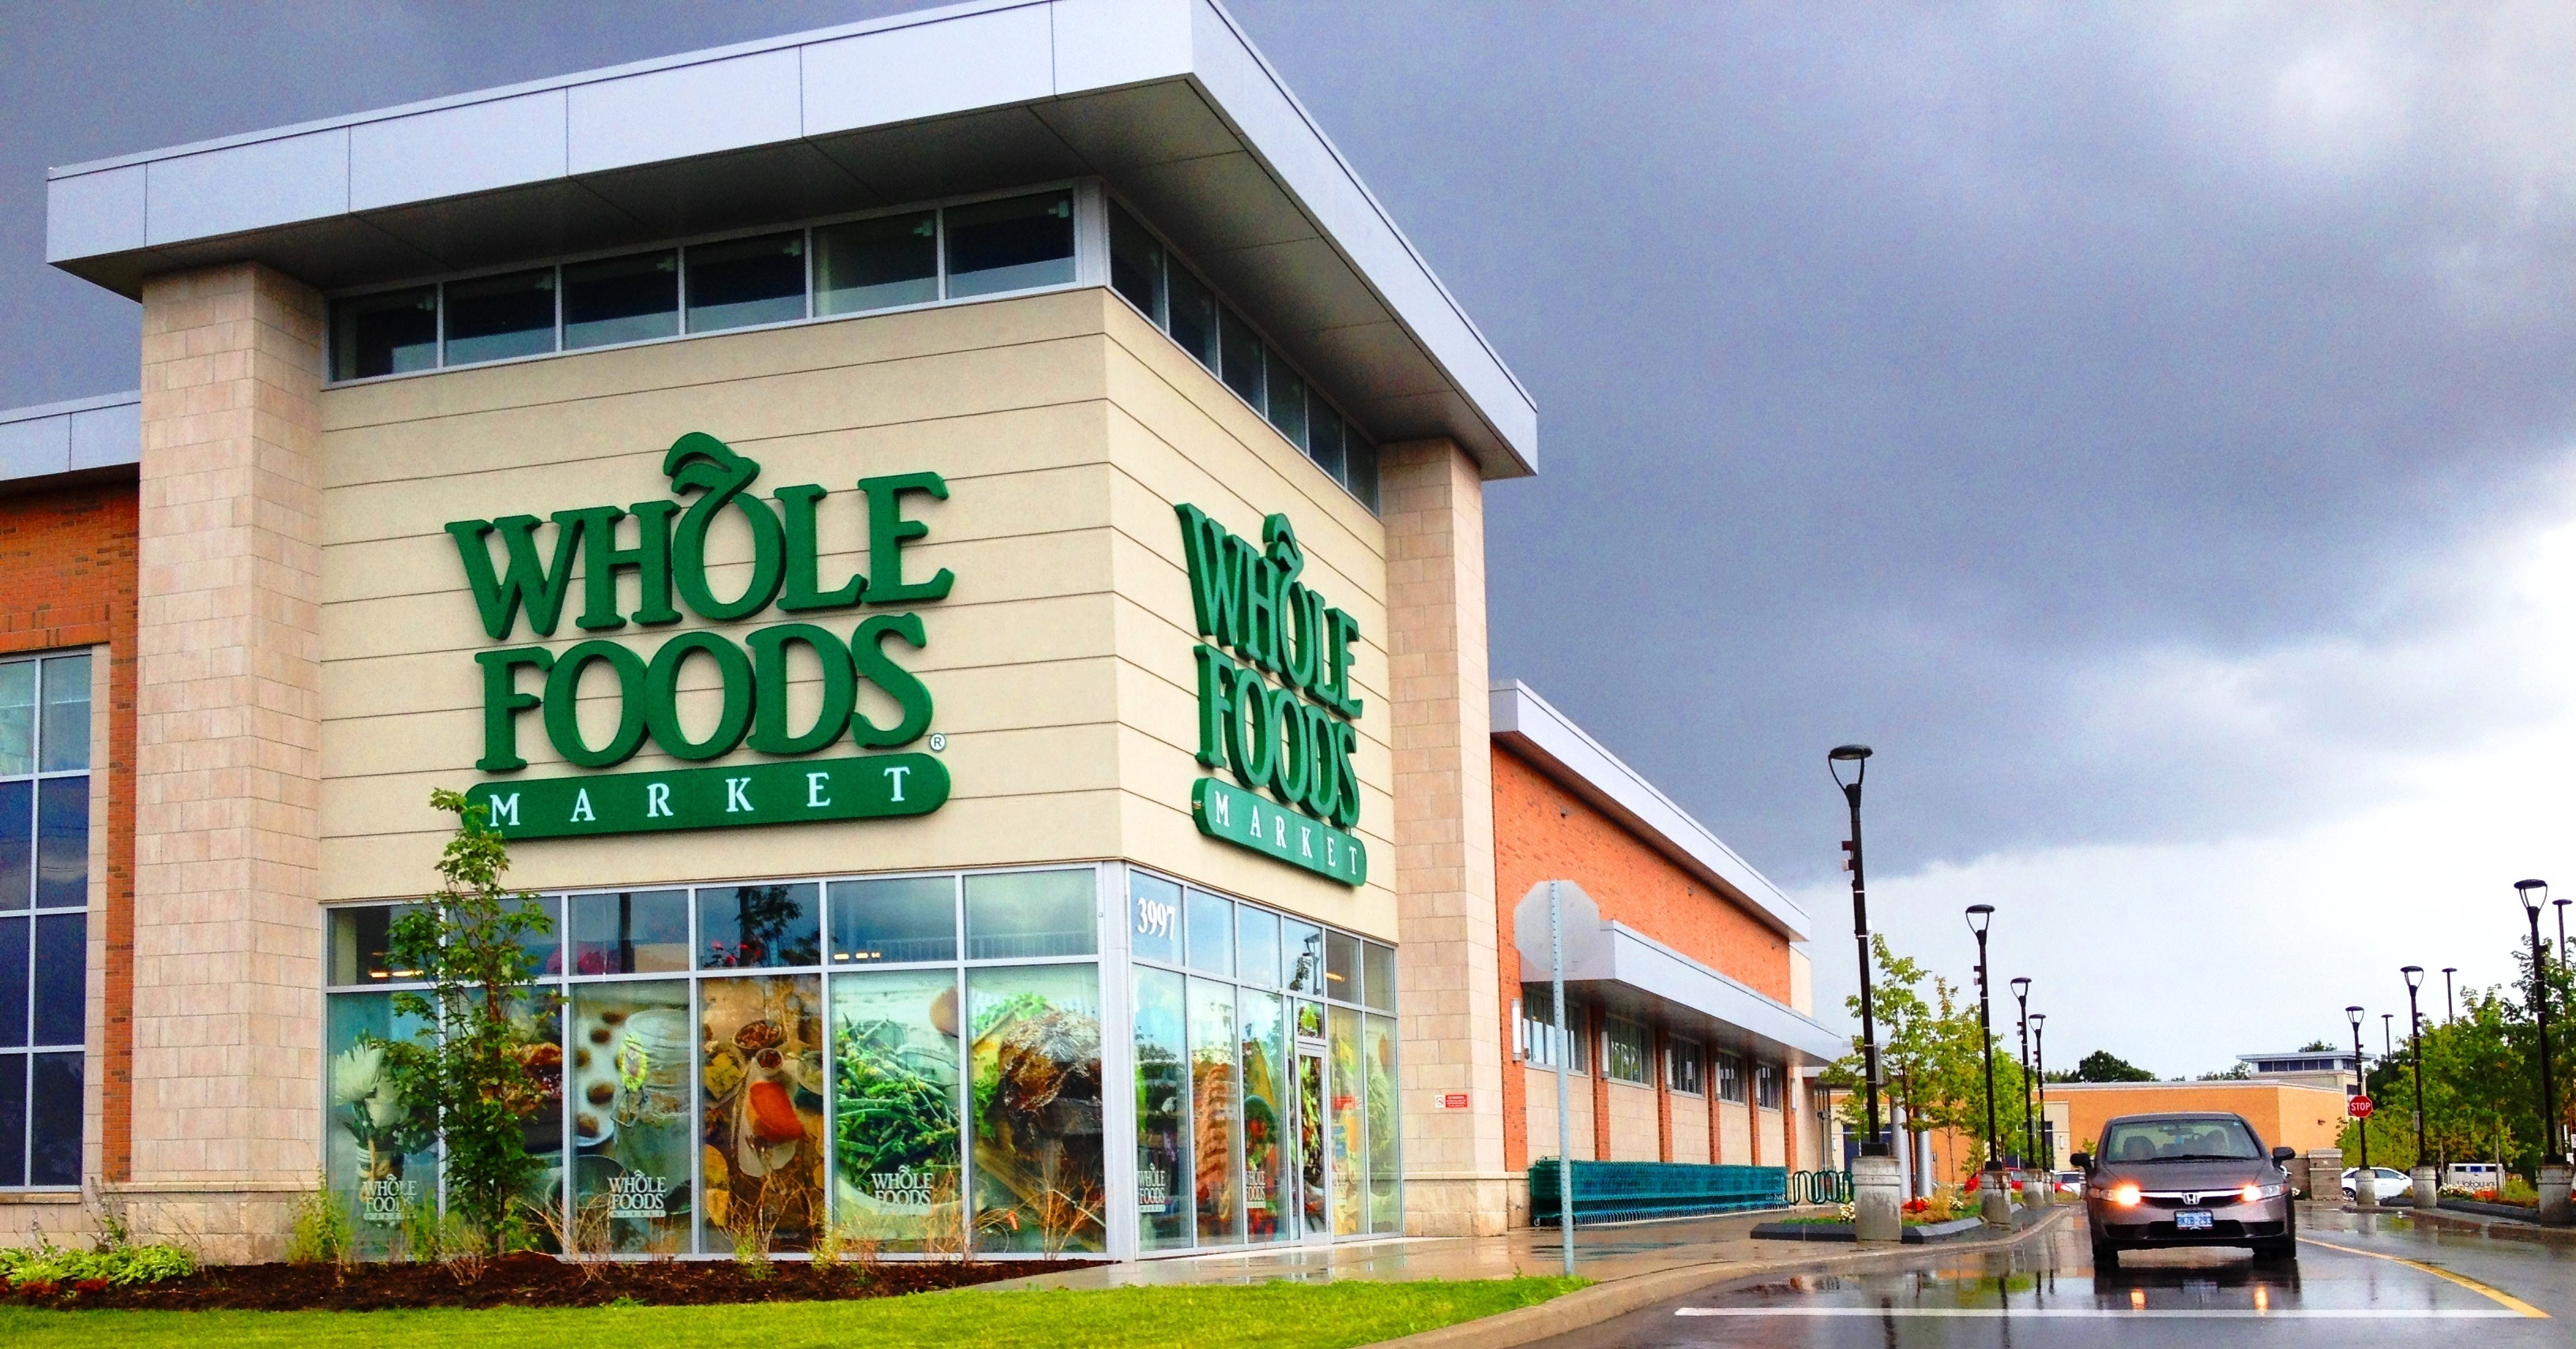 A Whole Foods Market in Markham, Ontario.